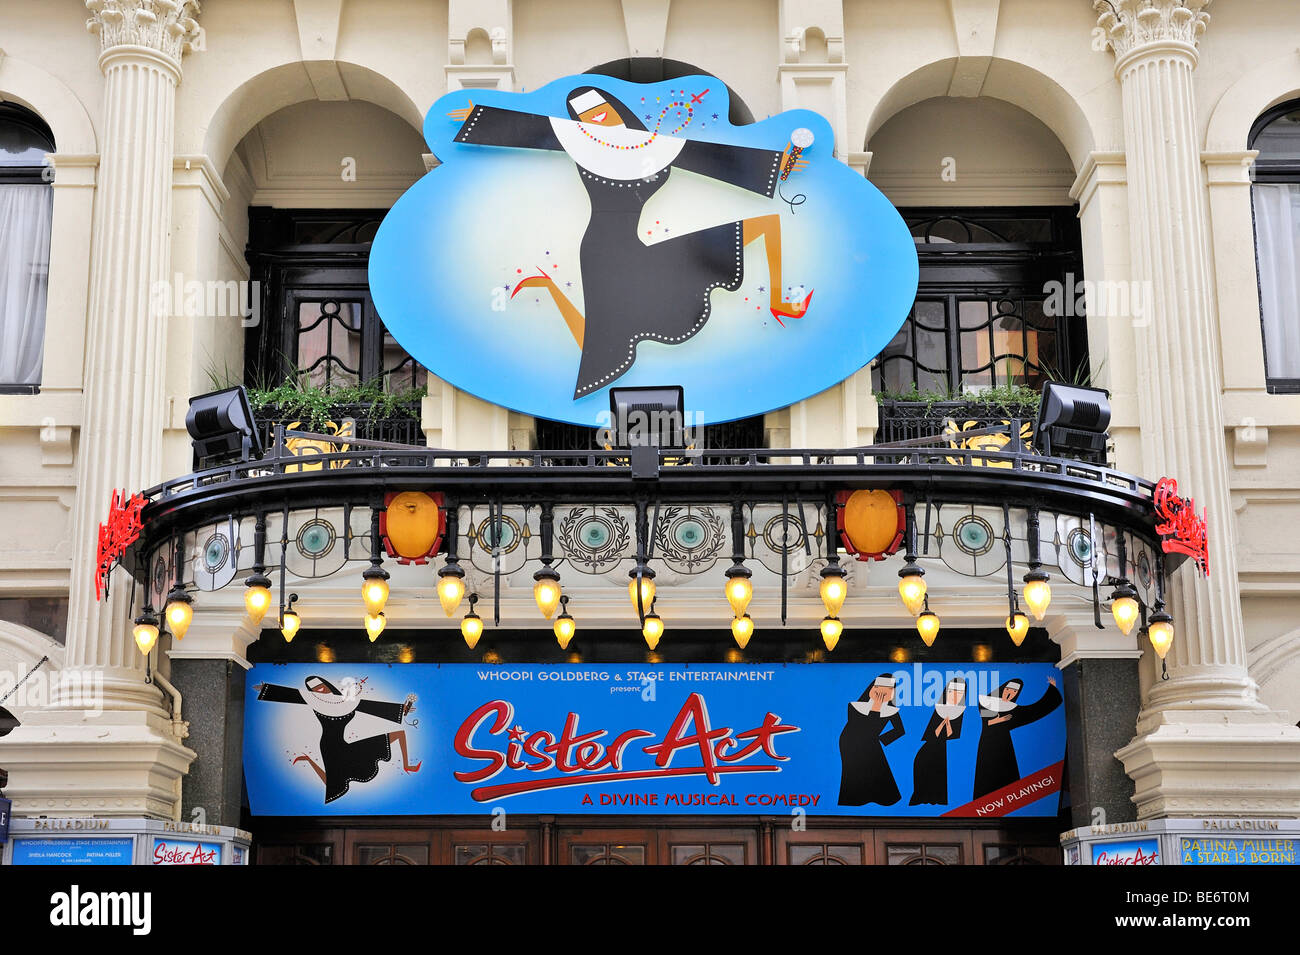 Banner and logo of the Sister Act Musical Theater in the Soho district, London, England, United Kingdom, Europe - Stock Image